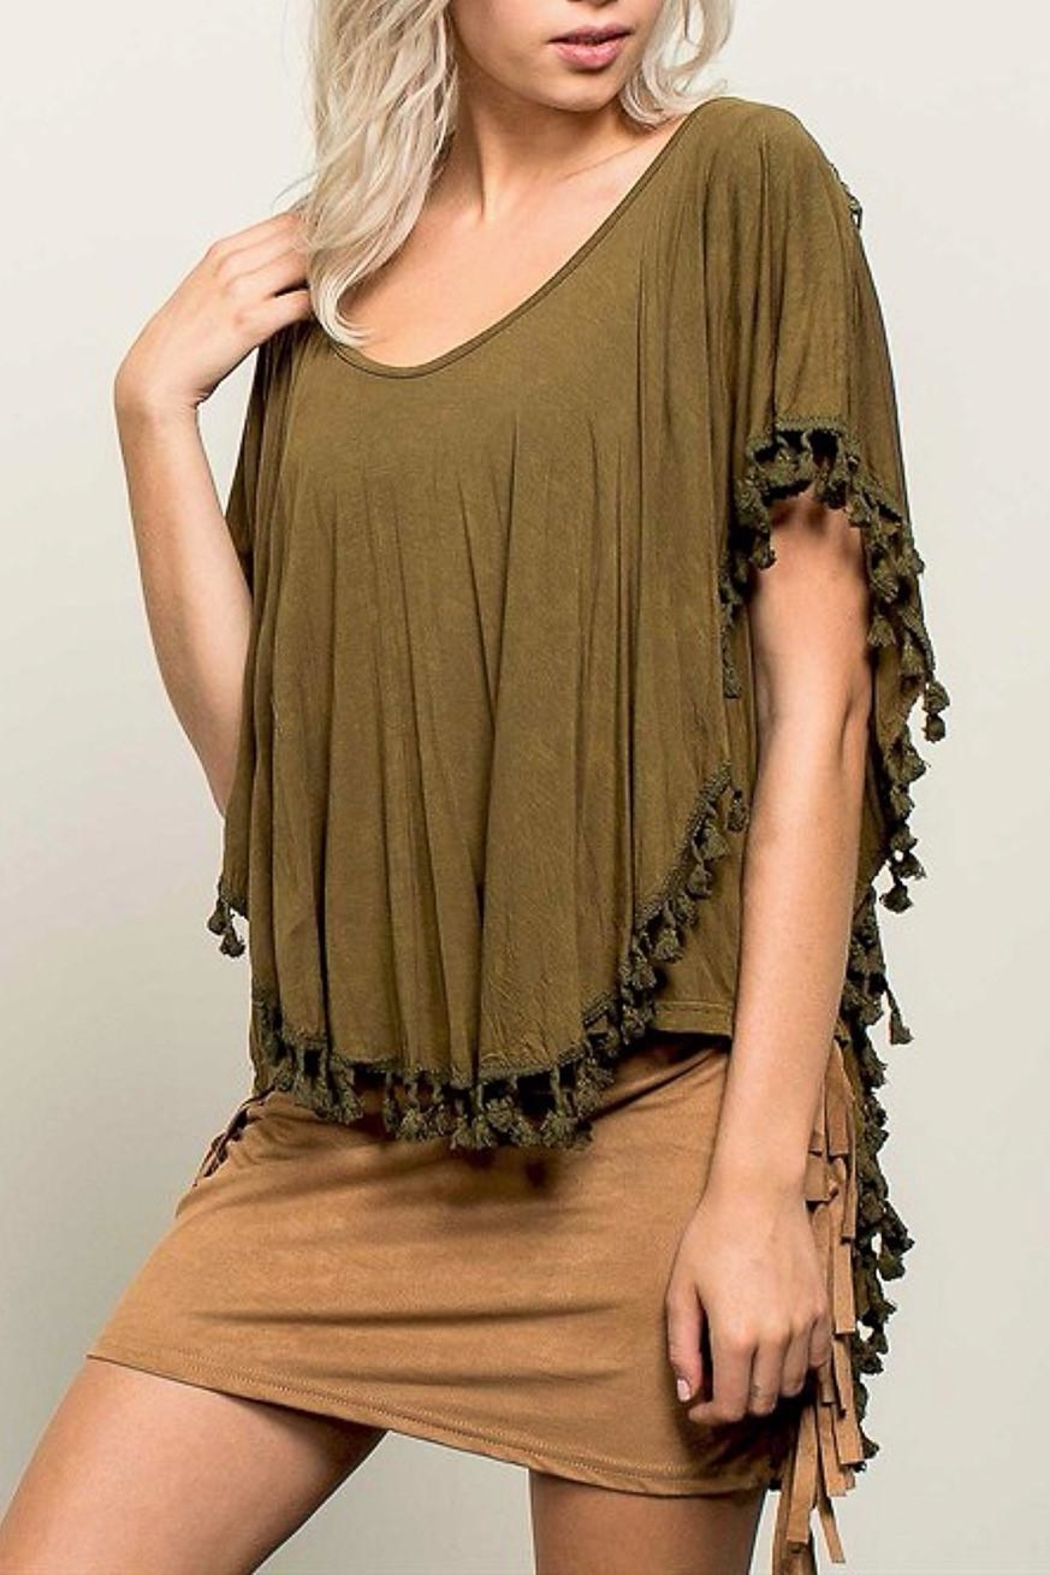 People Outfitter Billie's Olive Top - Main Image